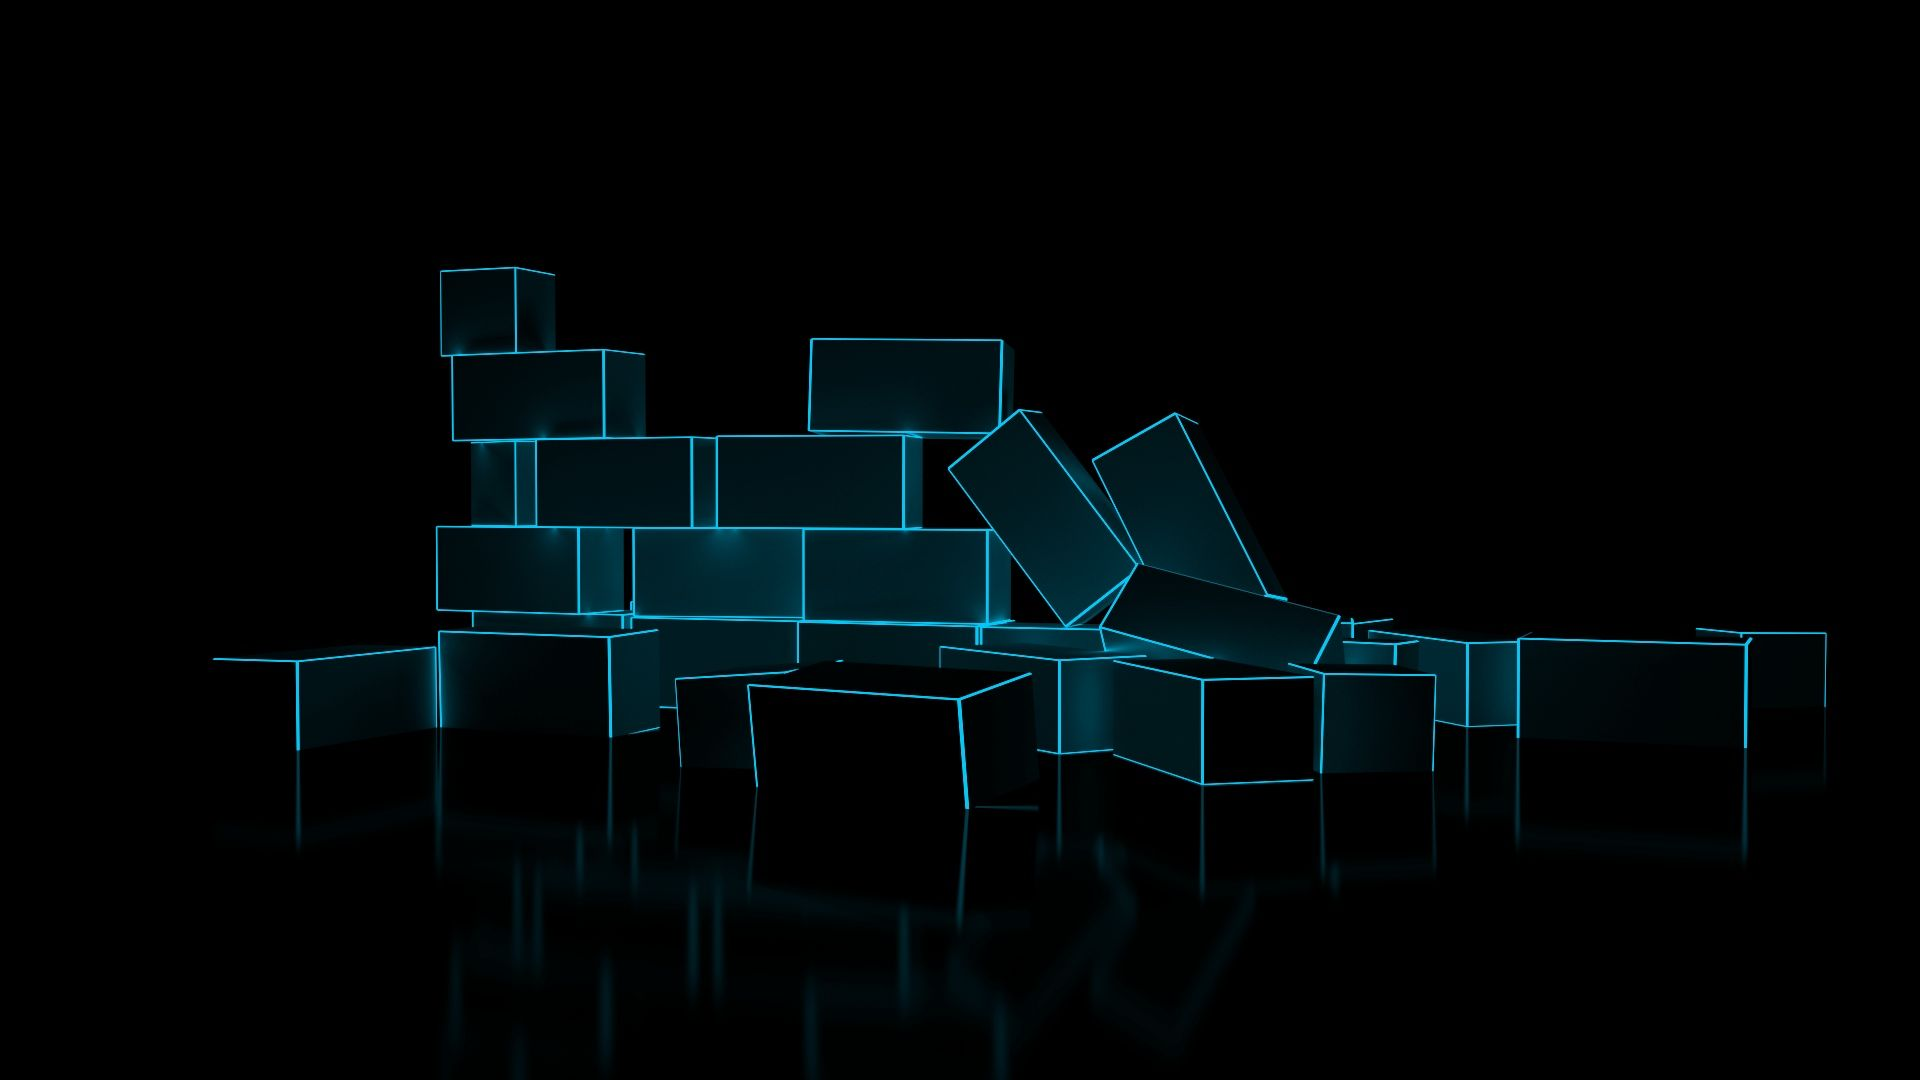 3d Blue Blocks Hd Wallpaper 1920x1080 Id 26854 In 2020 Desktop Wallpaper Design Wallpaper Pictures Black Wallpaper